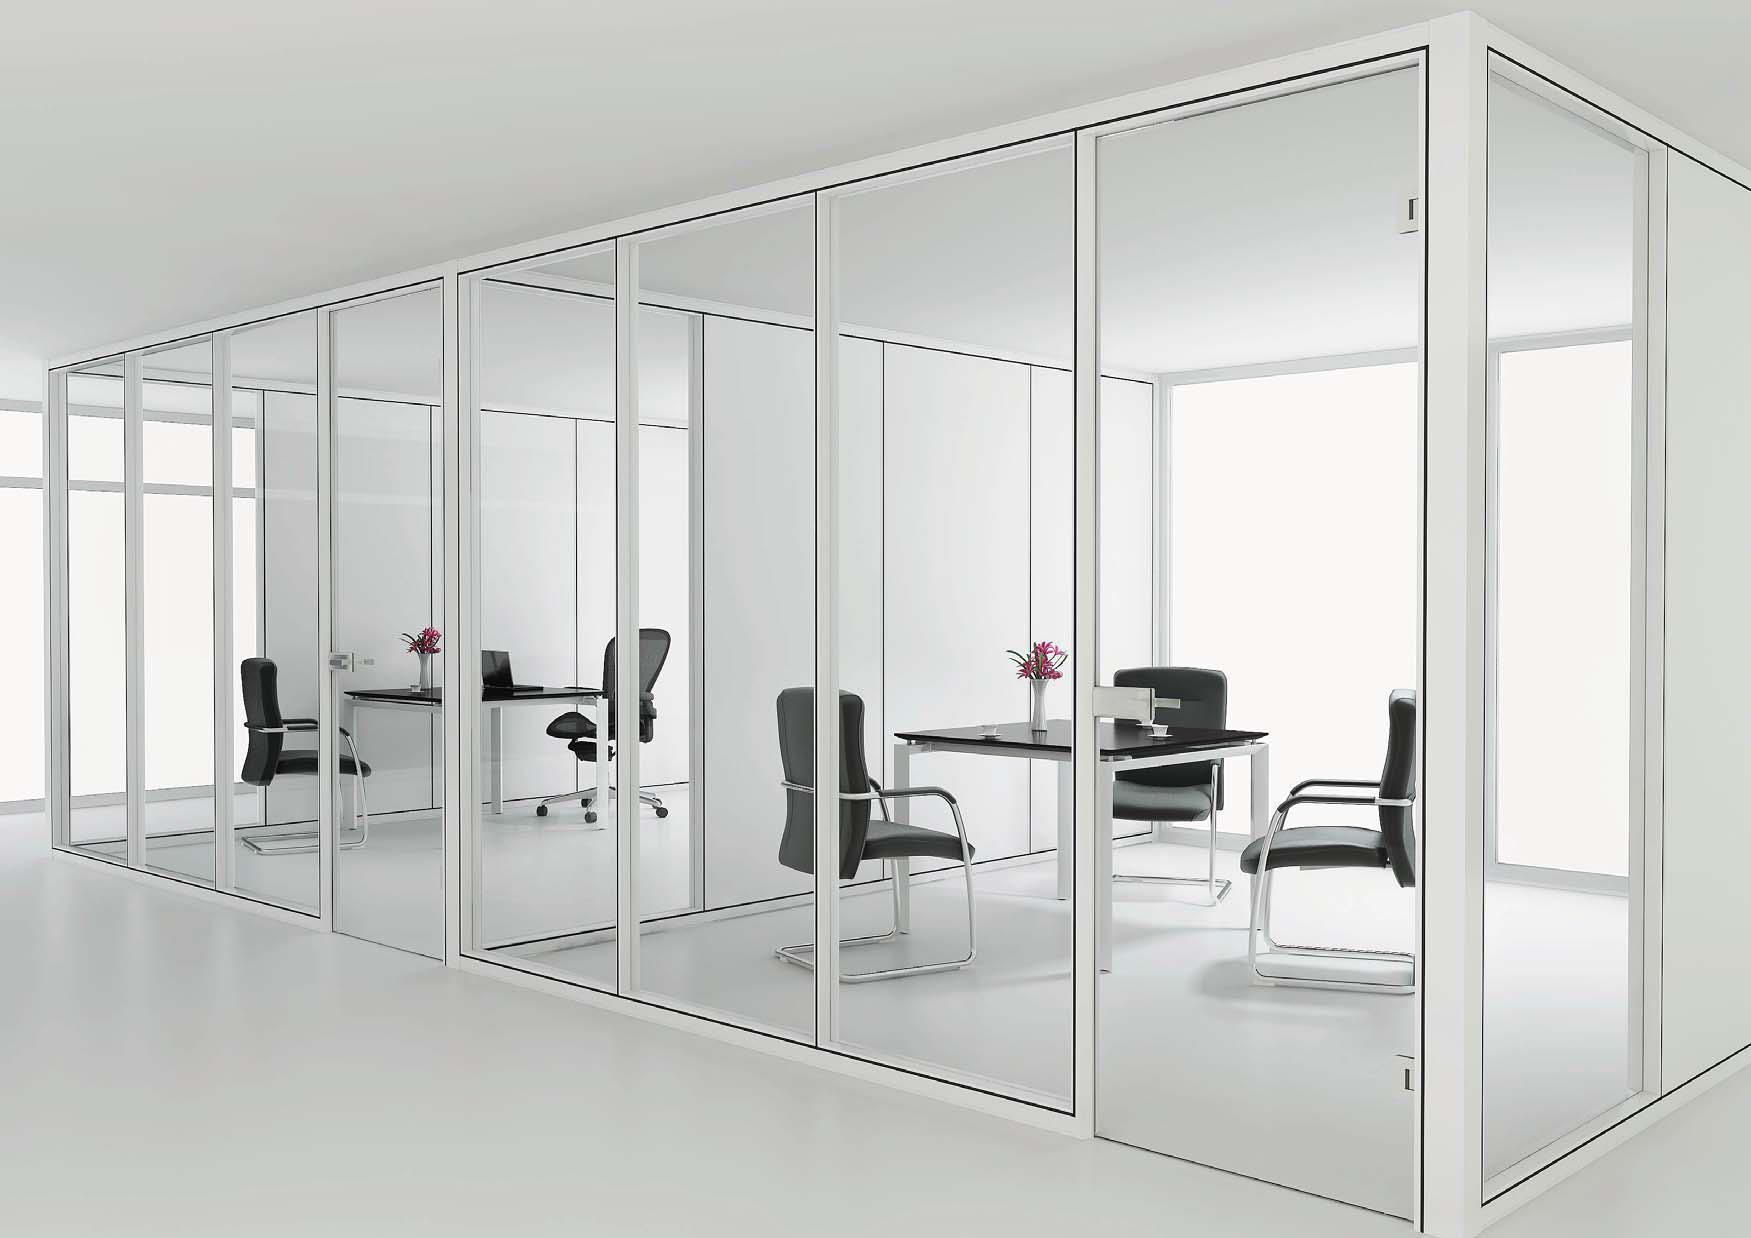 Sapphire 8 H Modular Office Floor To Ceiling Glass Panel Office